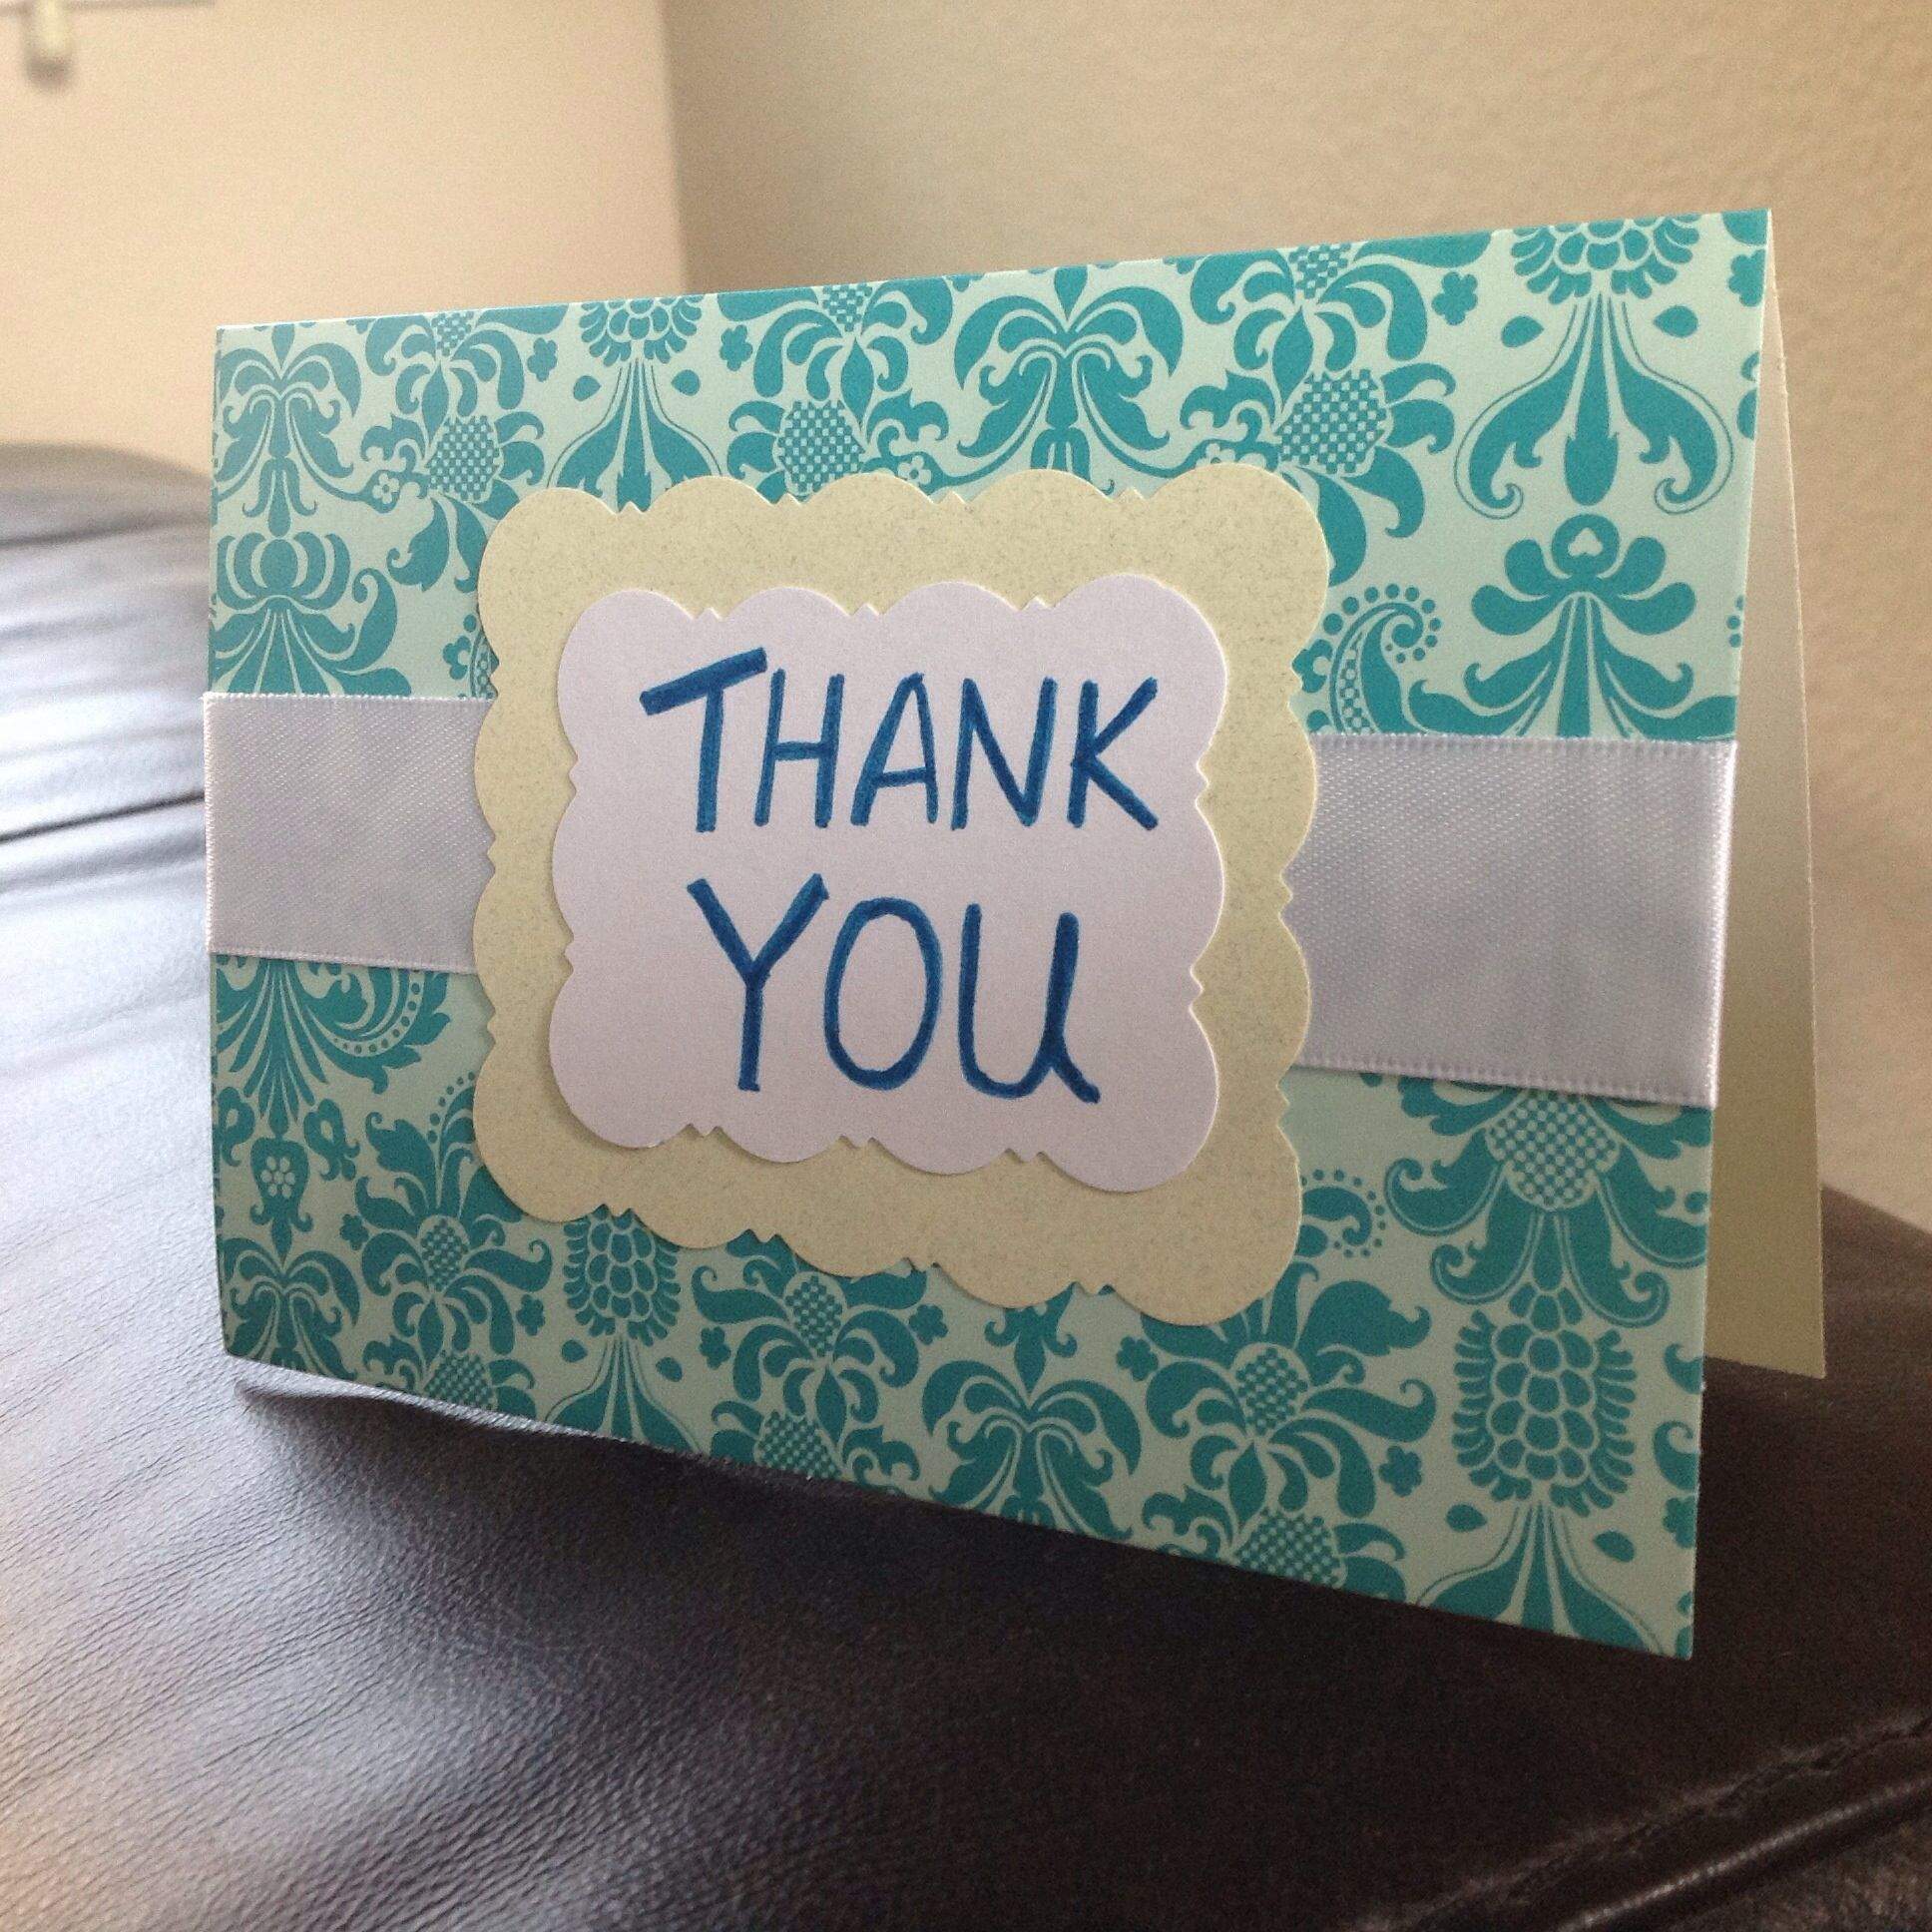 Superb Thank You Card Making Ideas Part - 10: Unique Ways To Make A Thank You Card | Give You Some Inspirations When You  Need